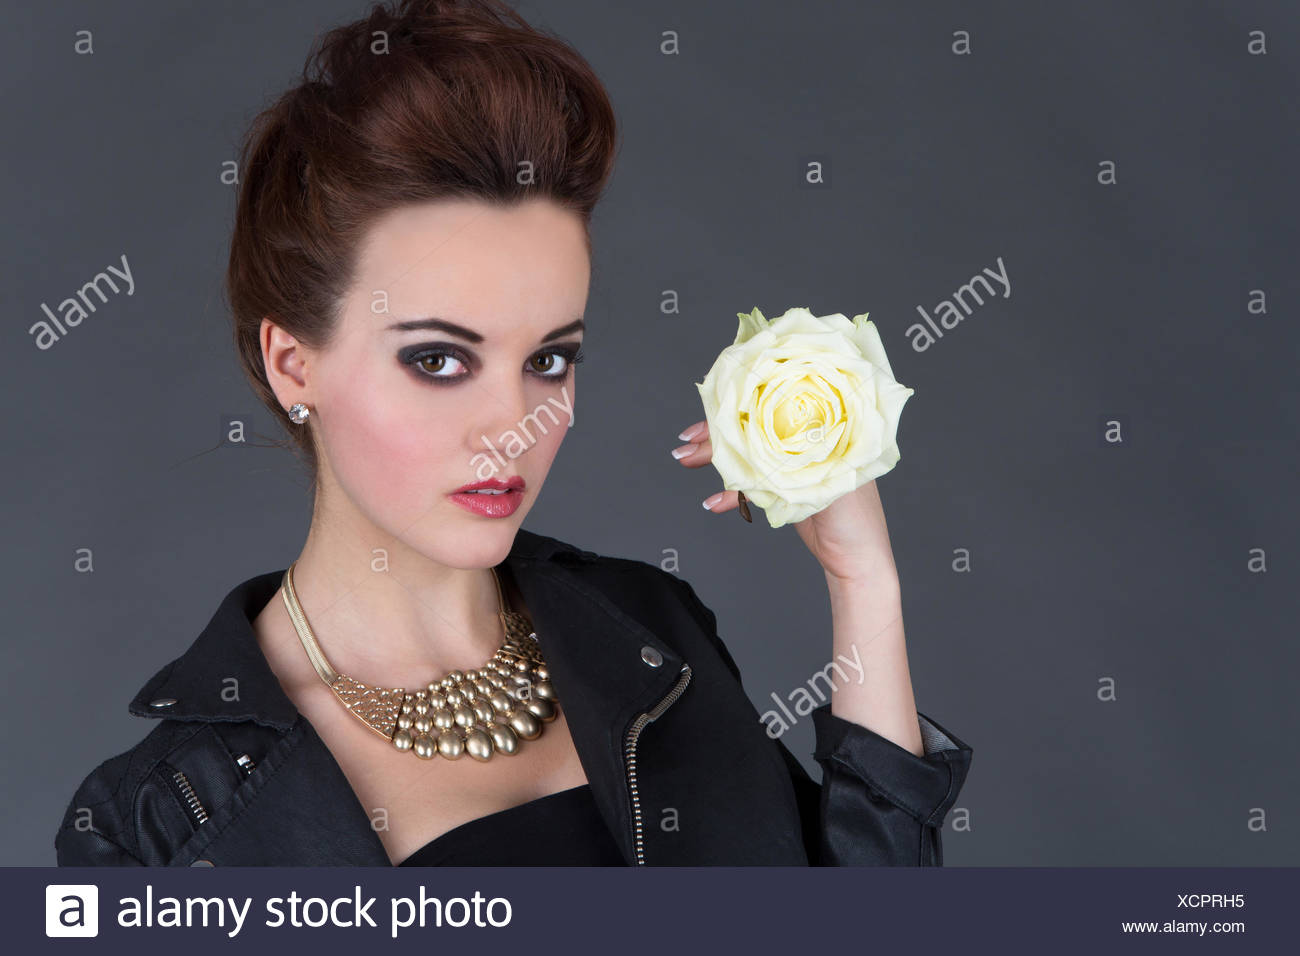 Young woman in leather outfit with white rose - Stock Image